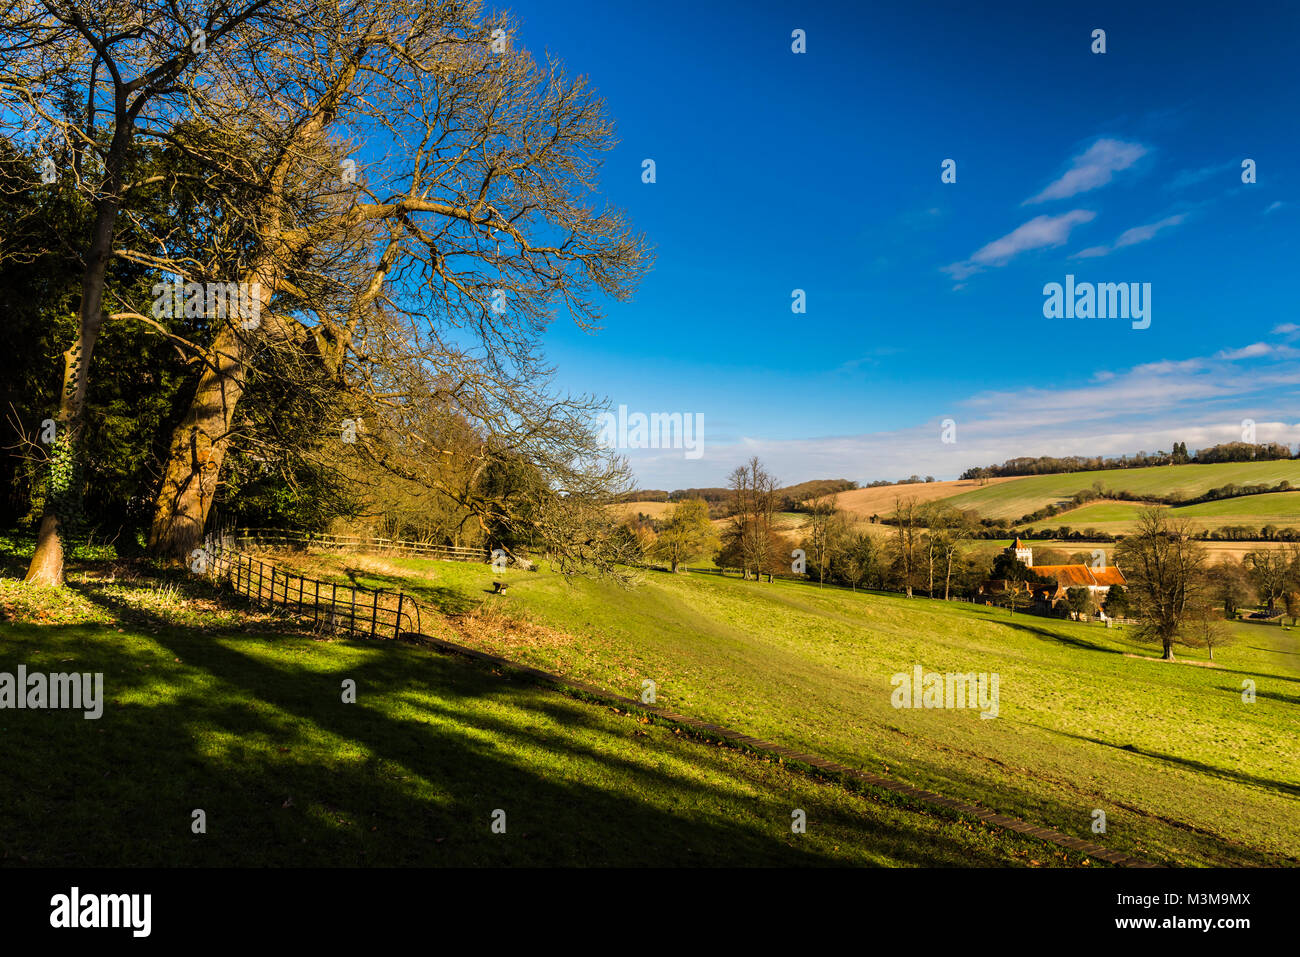 Church and fields near Hughenden, Buckinghamshire, UK - Stock Image